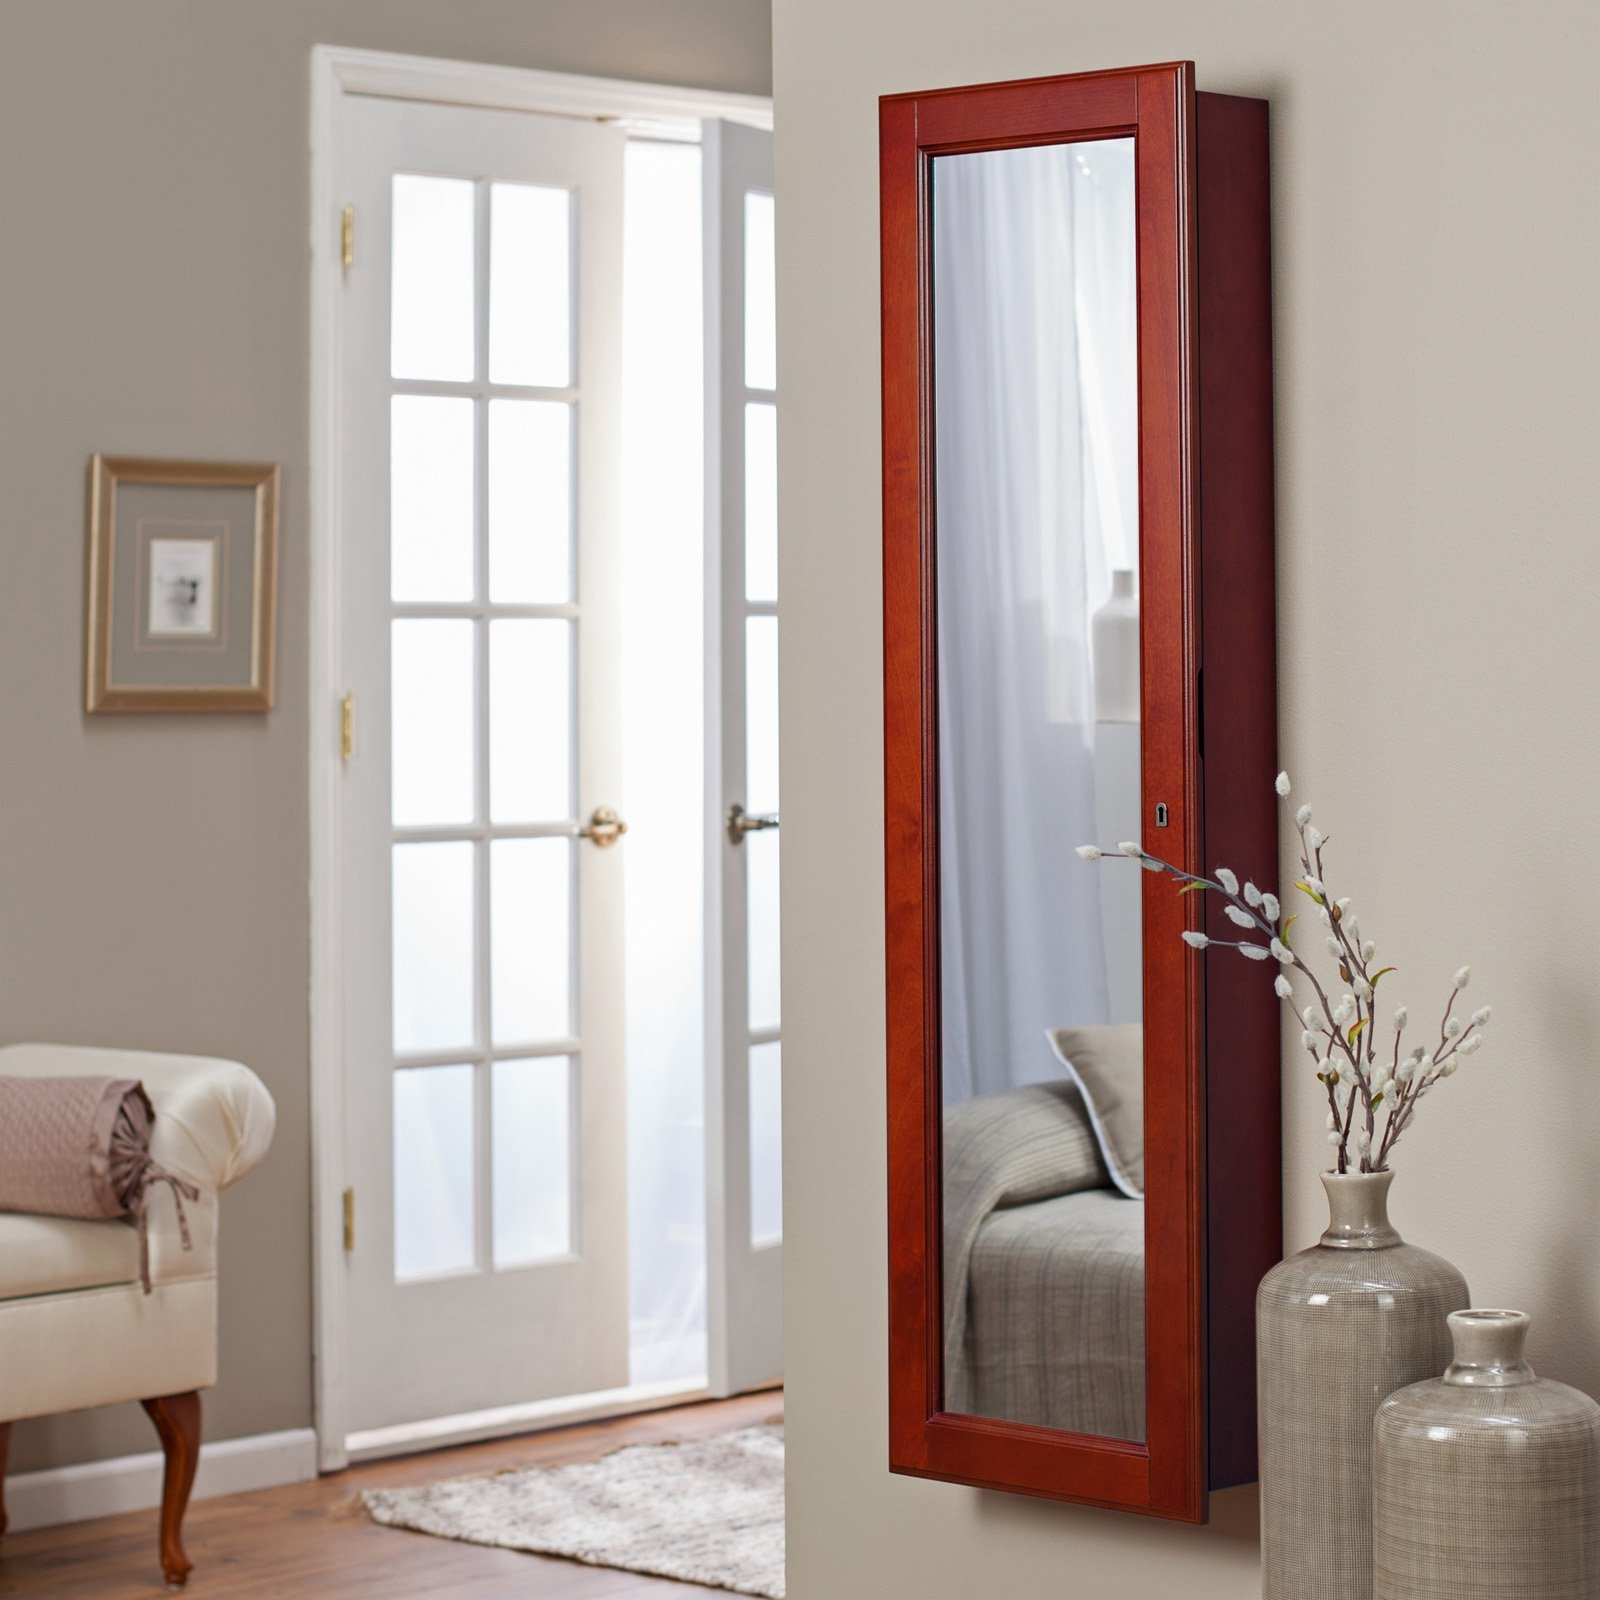 Full Length Mirror Wall Mount Jewelry Armoire